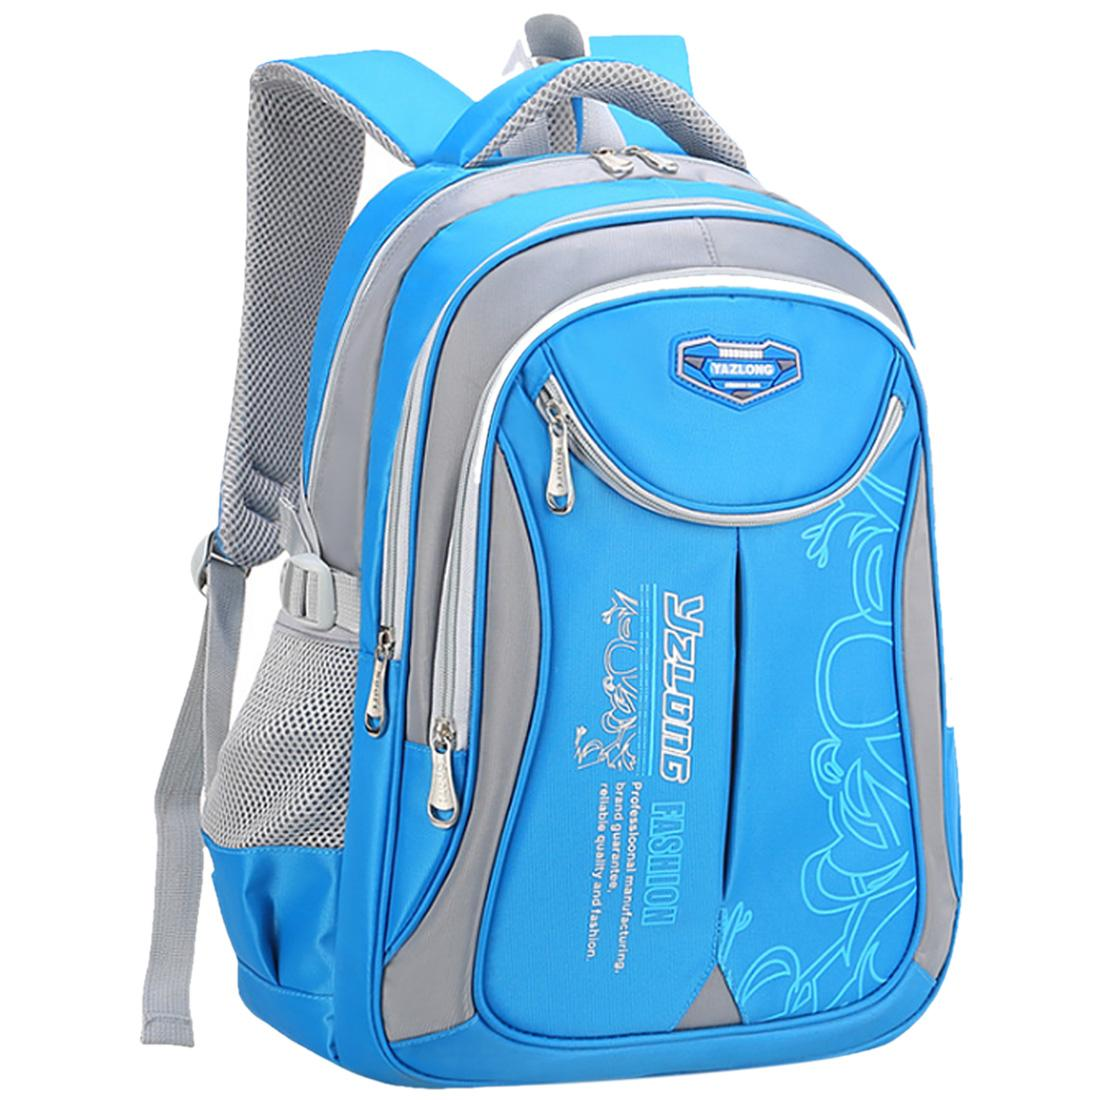 7178377acef1 Children Schoolbag Spinal Protective Backpack for Grade 3-6 Students - Blue  + Light Grey